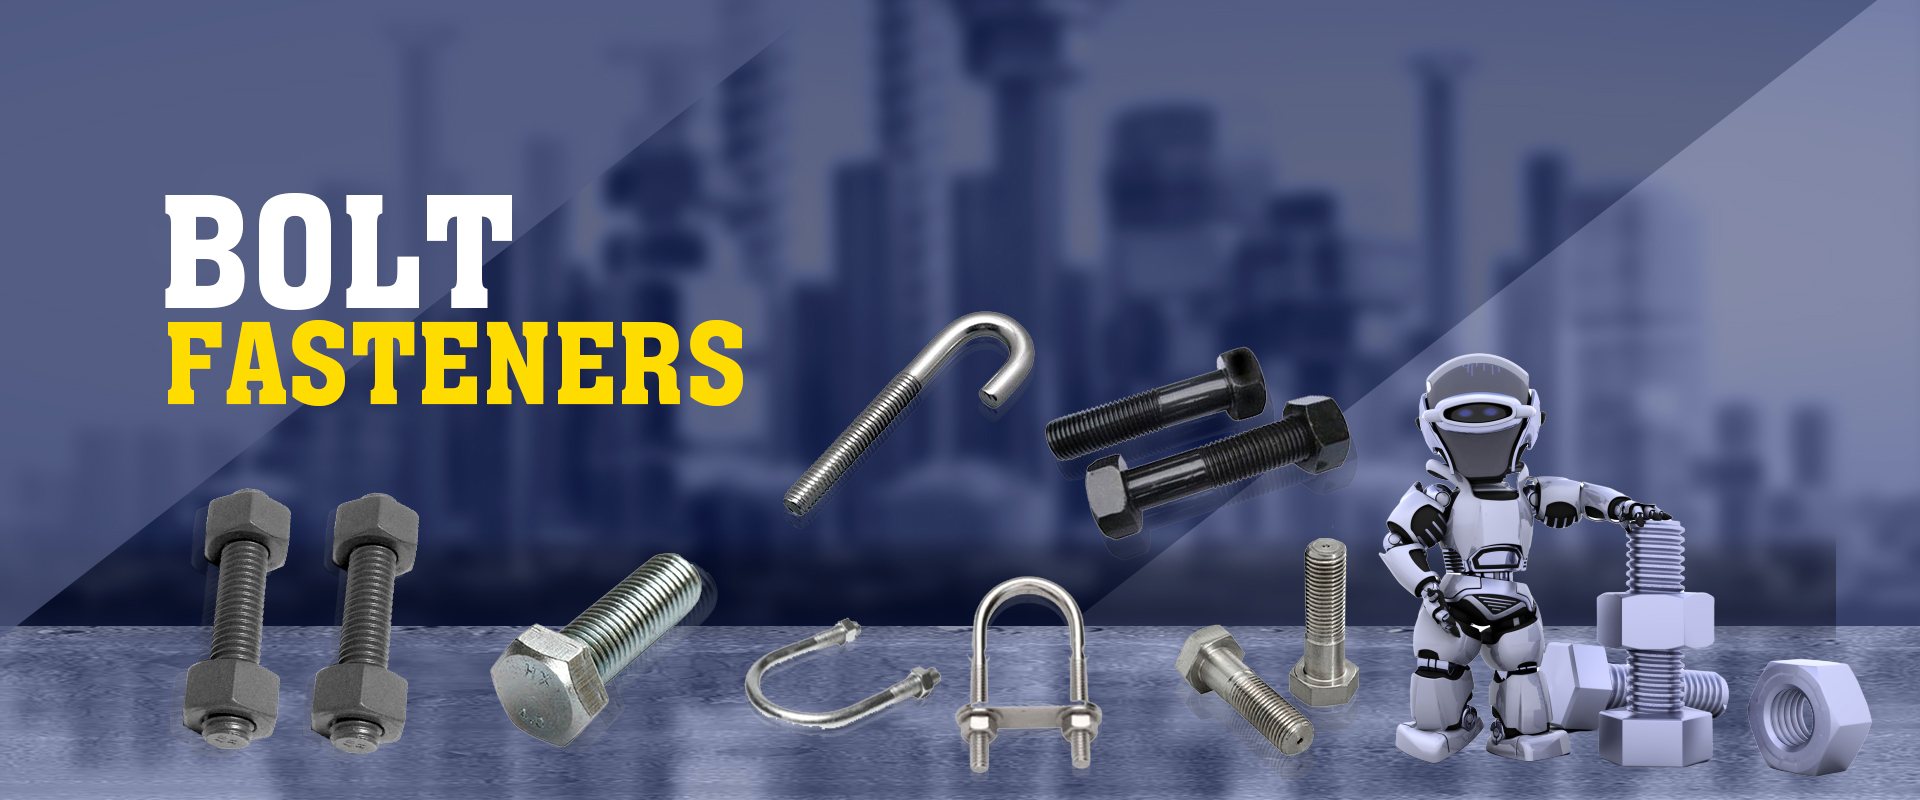 Bolt Fasteners